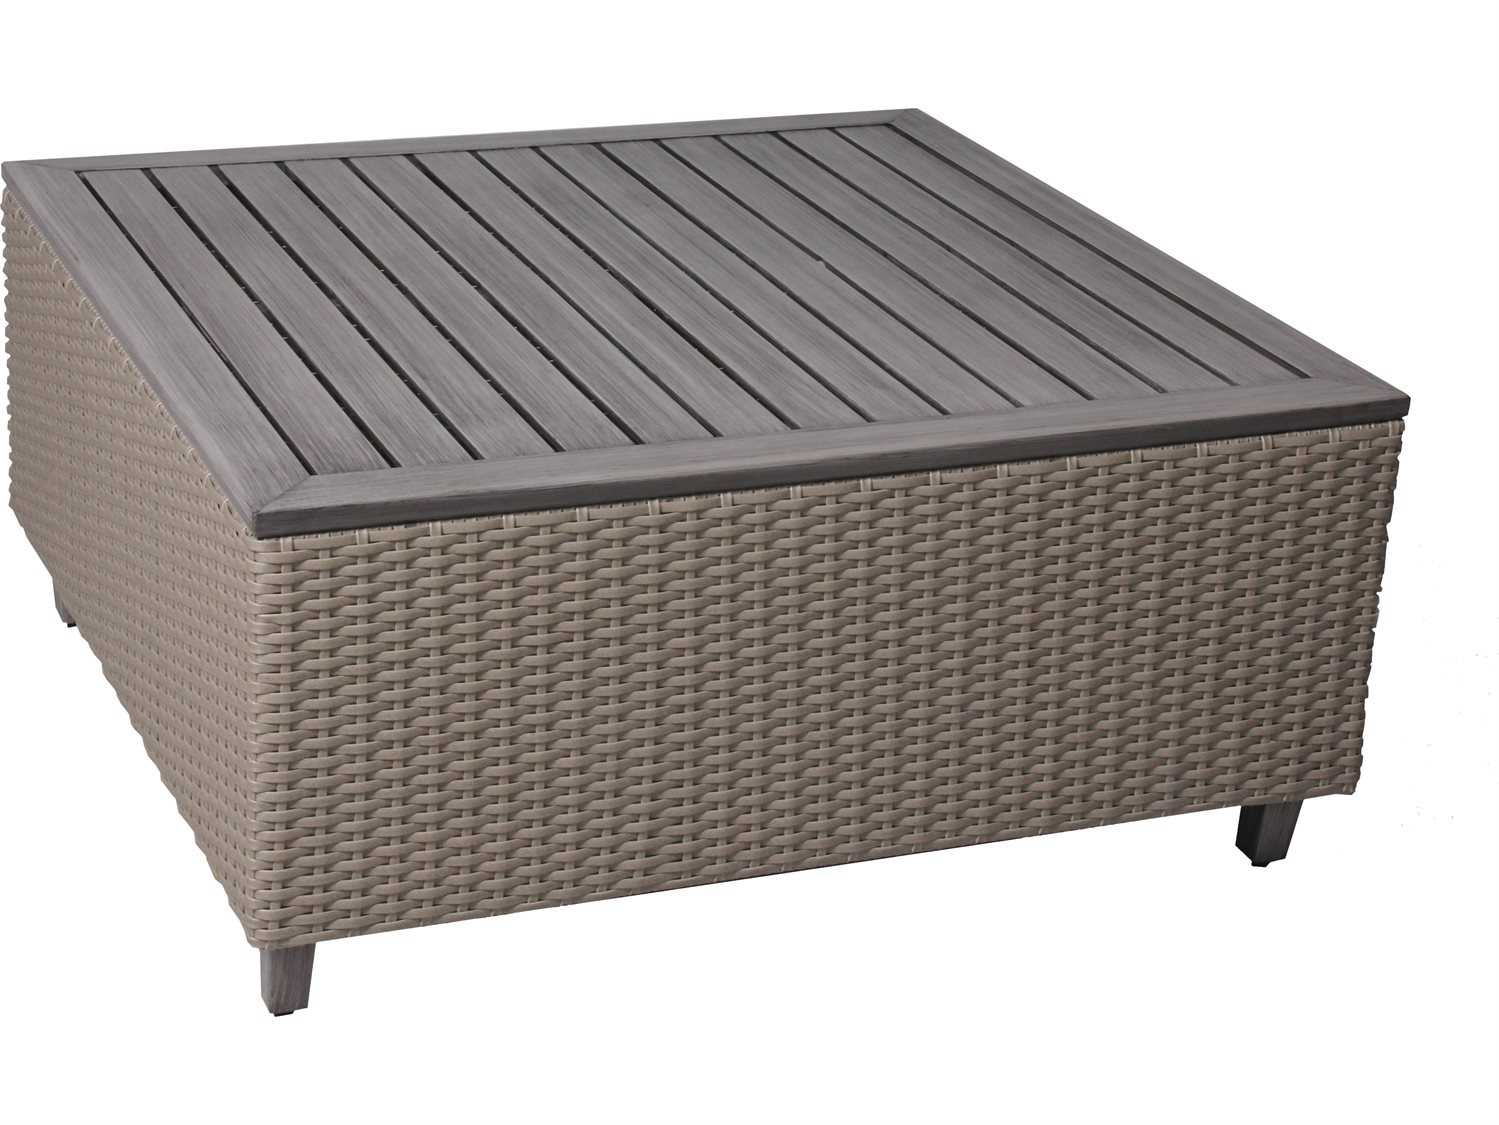 Suncoast Haven Wicker 42 Square Coffee Table 130 T42c